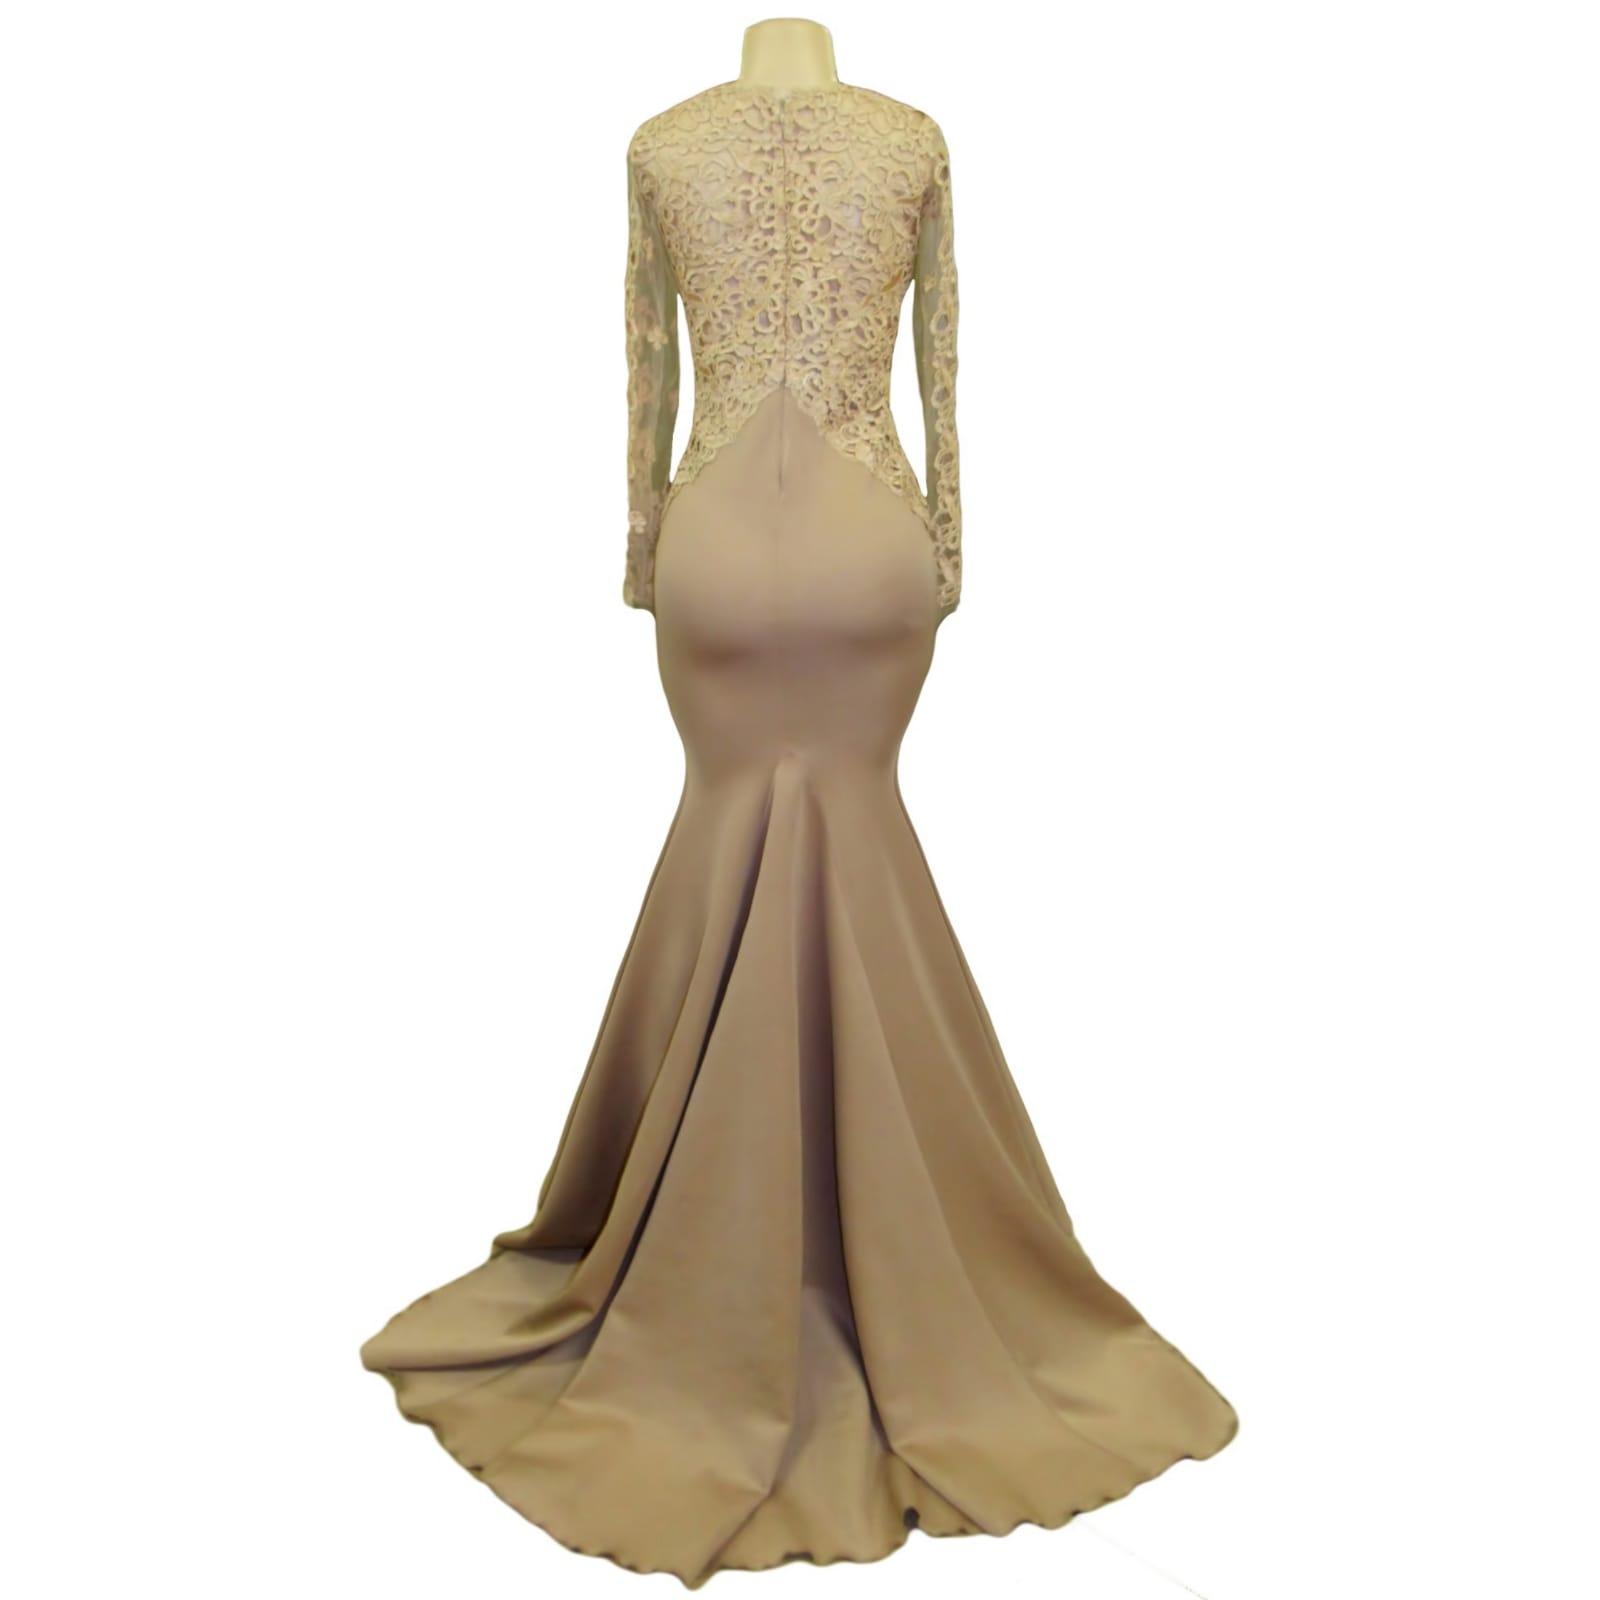 Tan and champagne lace bodice prom dress 3 tan & champagne lace bodice, soft mermaid prom dress, lace detail going to the hips. With a closed lace back. Illusion lace sleeves and a train.